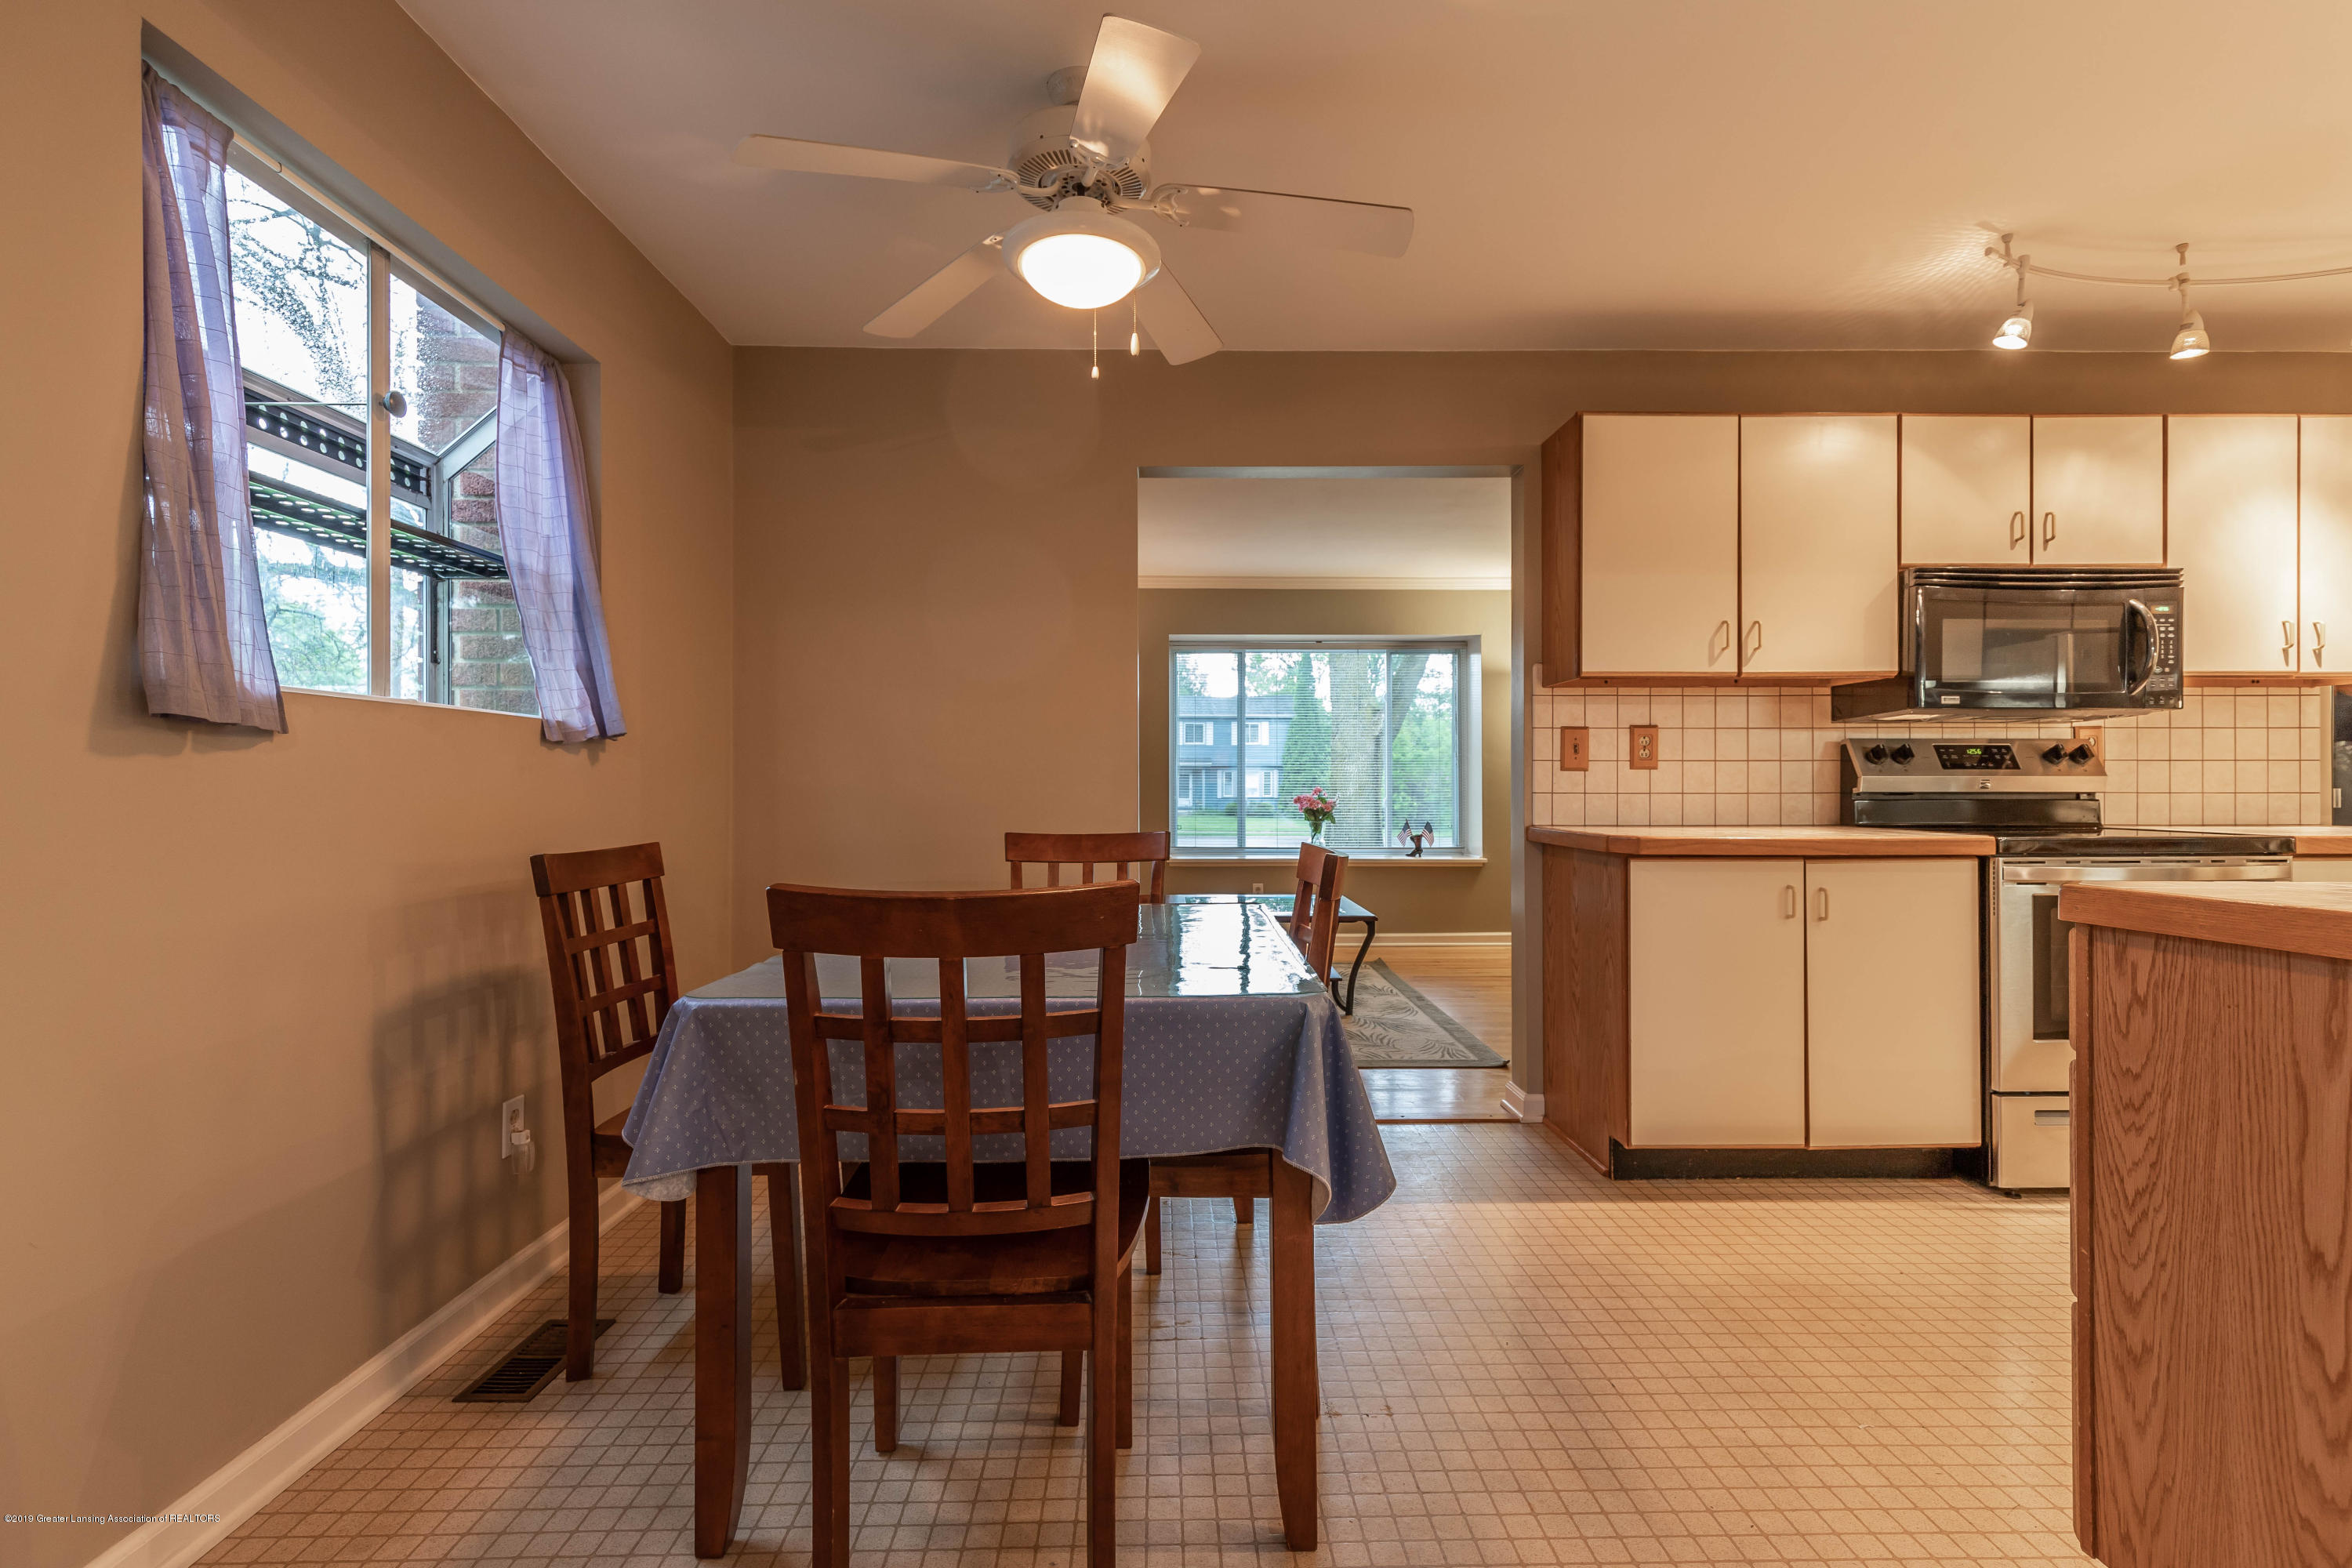 1825 N Harrison Rd - Dining area - 10